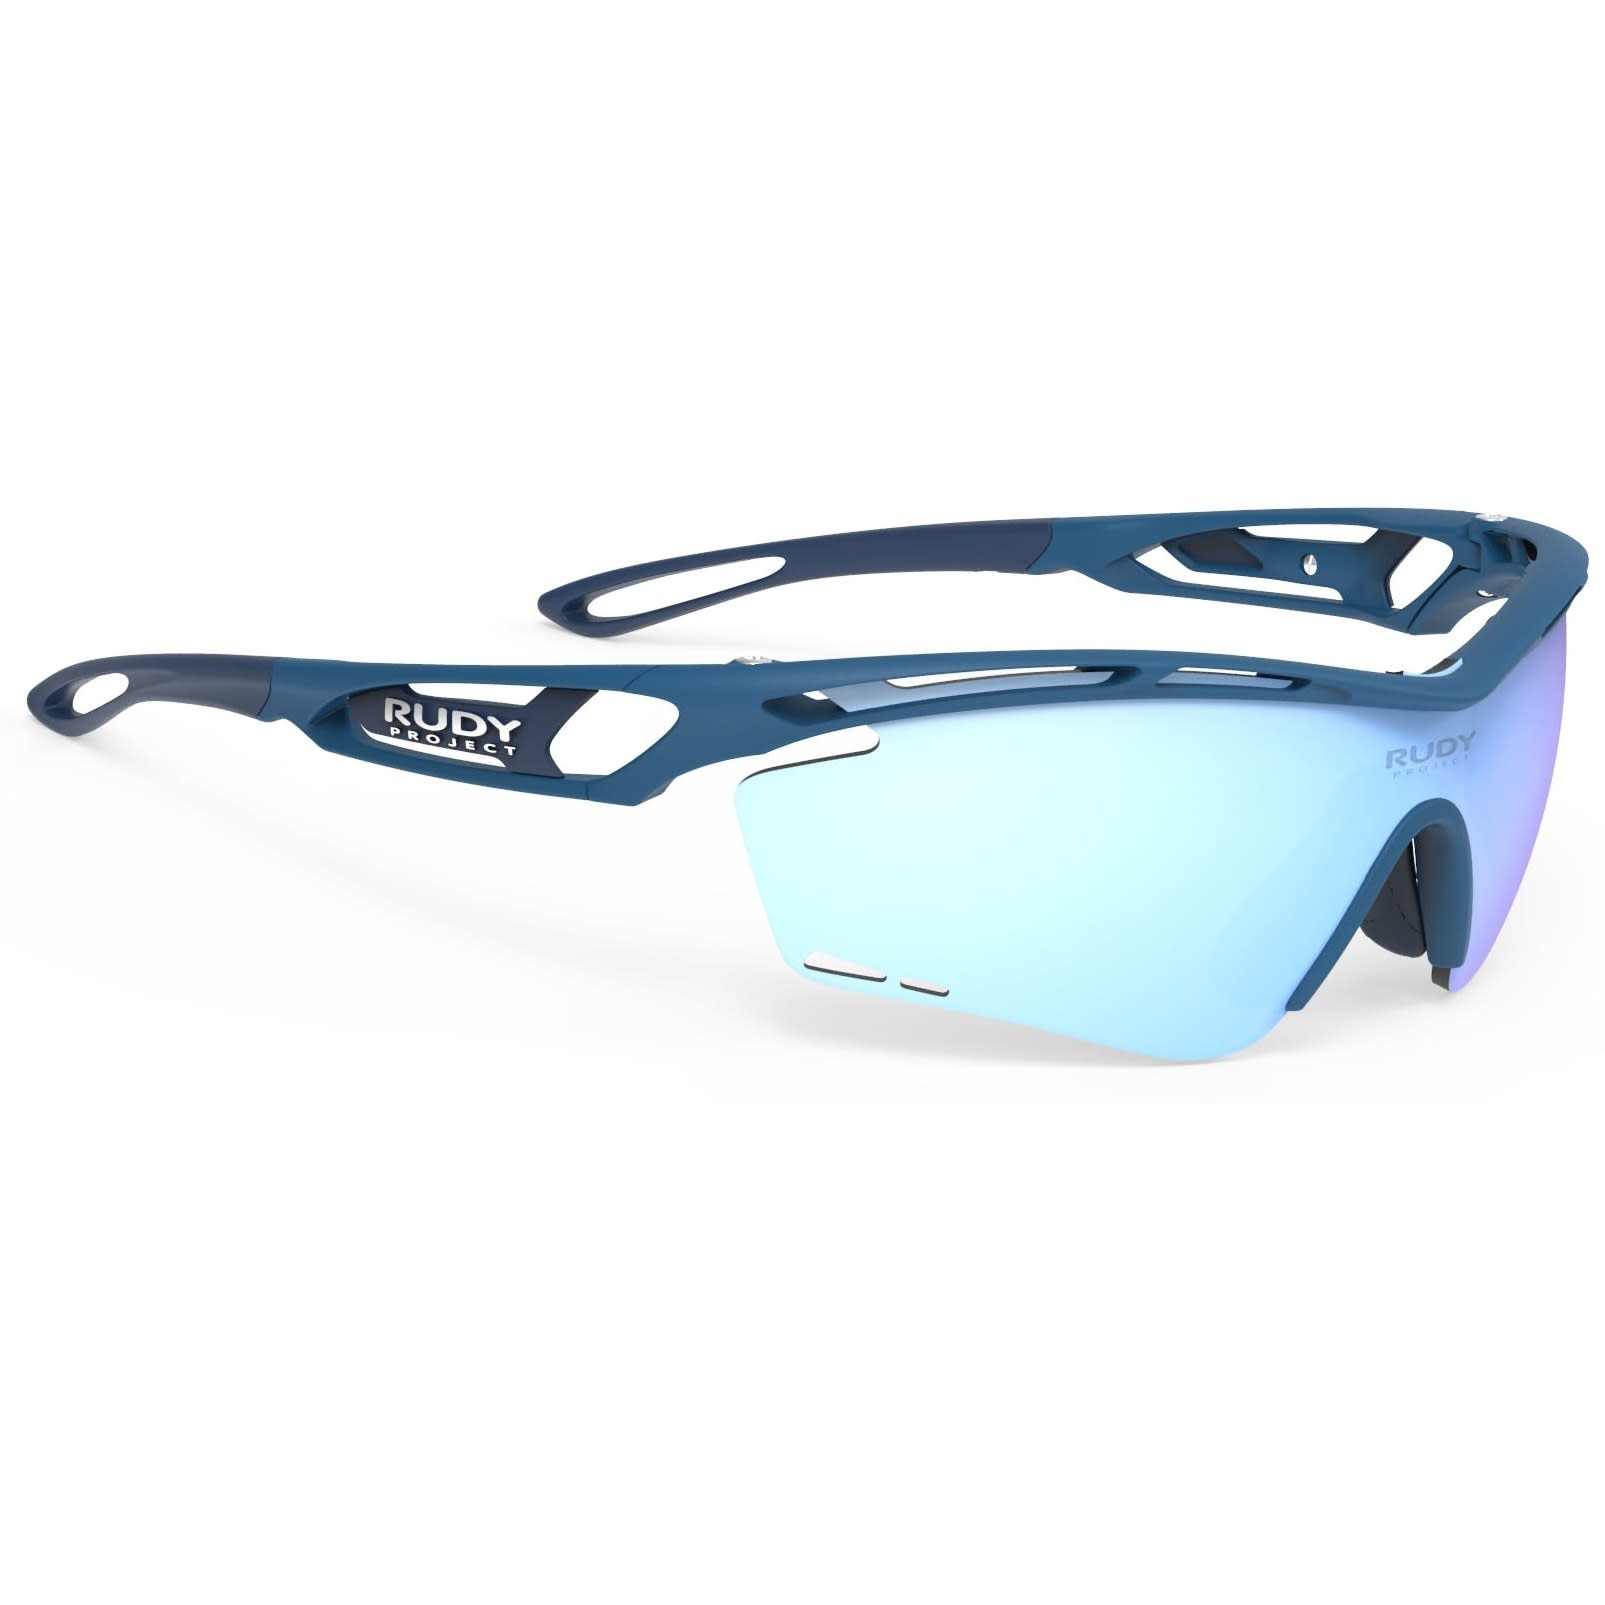 Rudy Project Rudy Project Tralyx sunglasses Pacific blue - MLS ICE